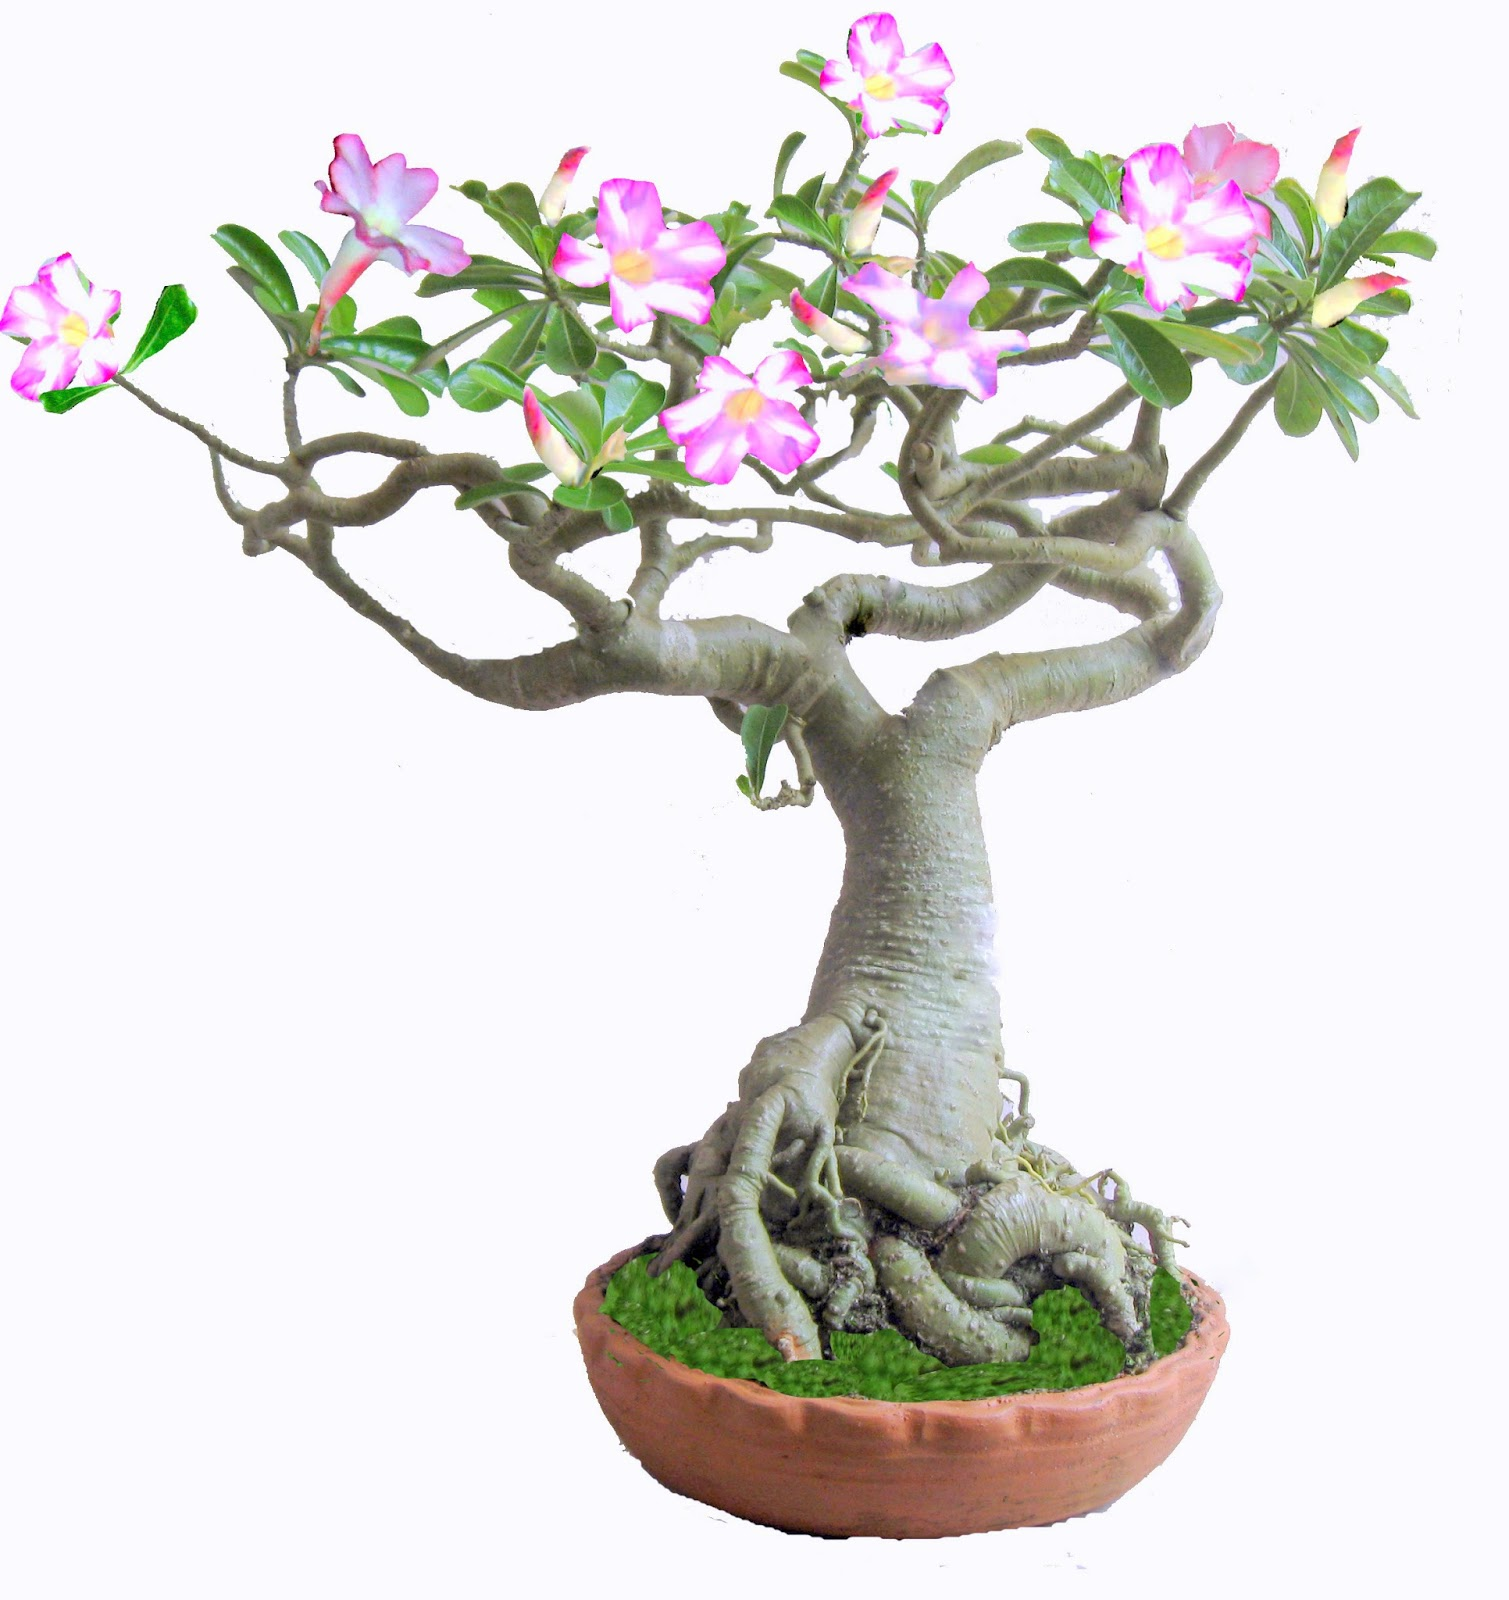 Bonsai Kerala Bonsai Art